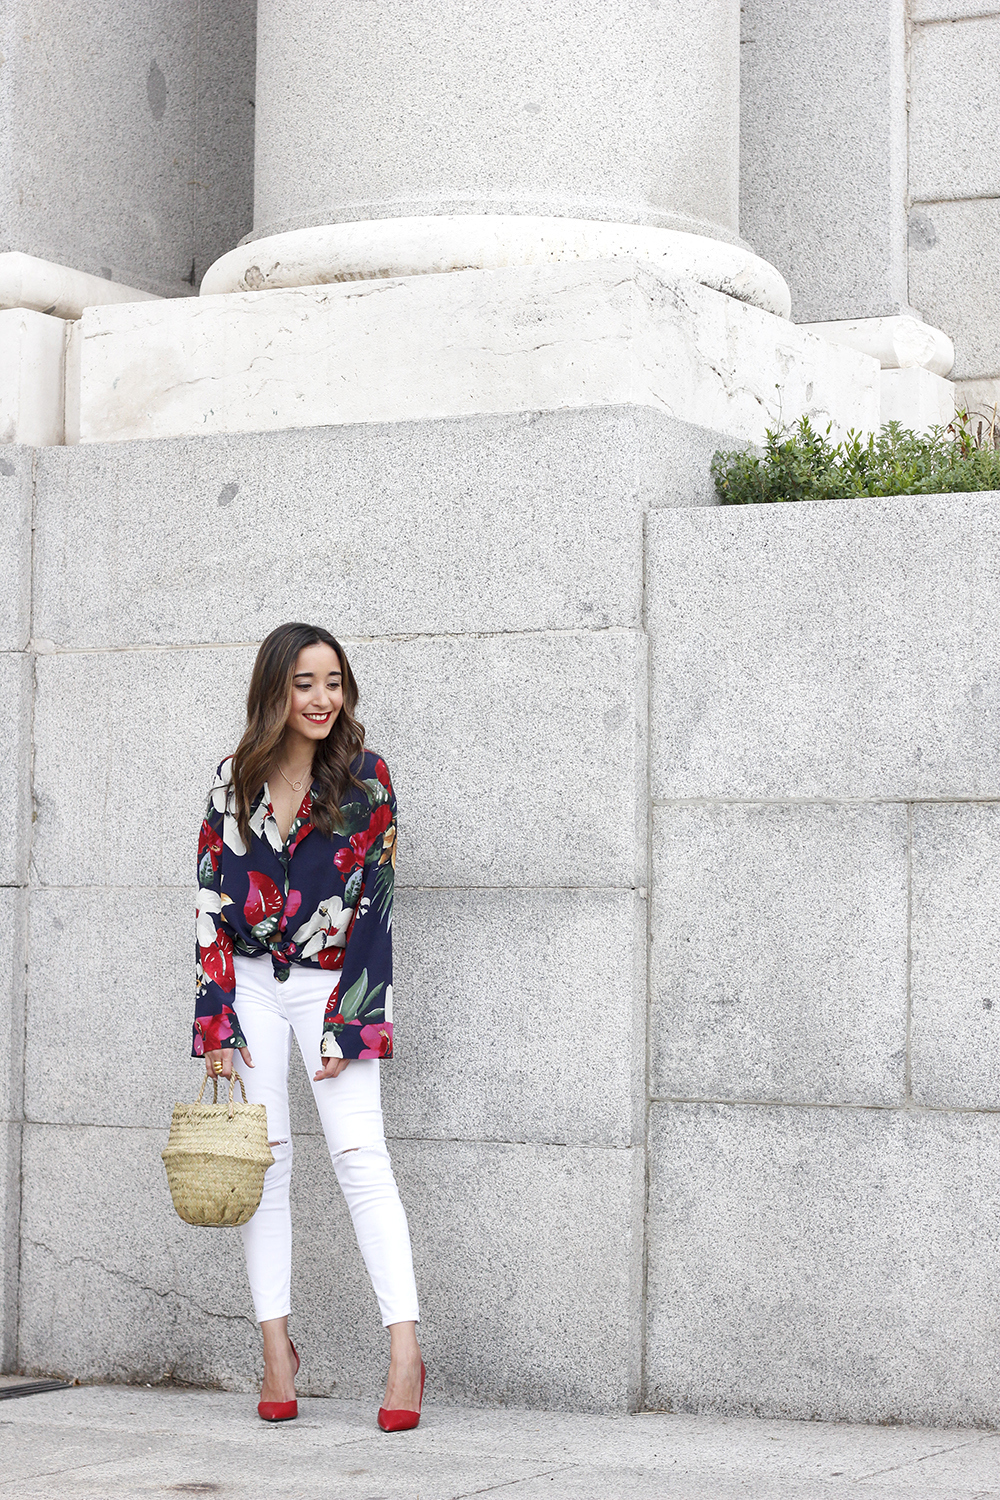 Tropical shirt ripped white denim jeans red heels summer outfit03